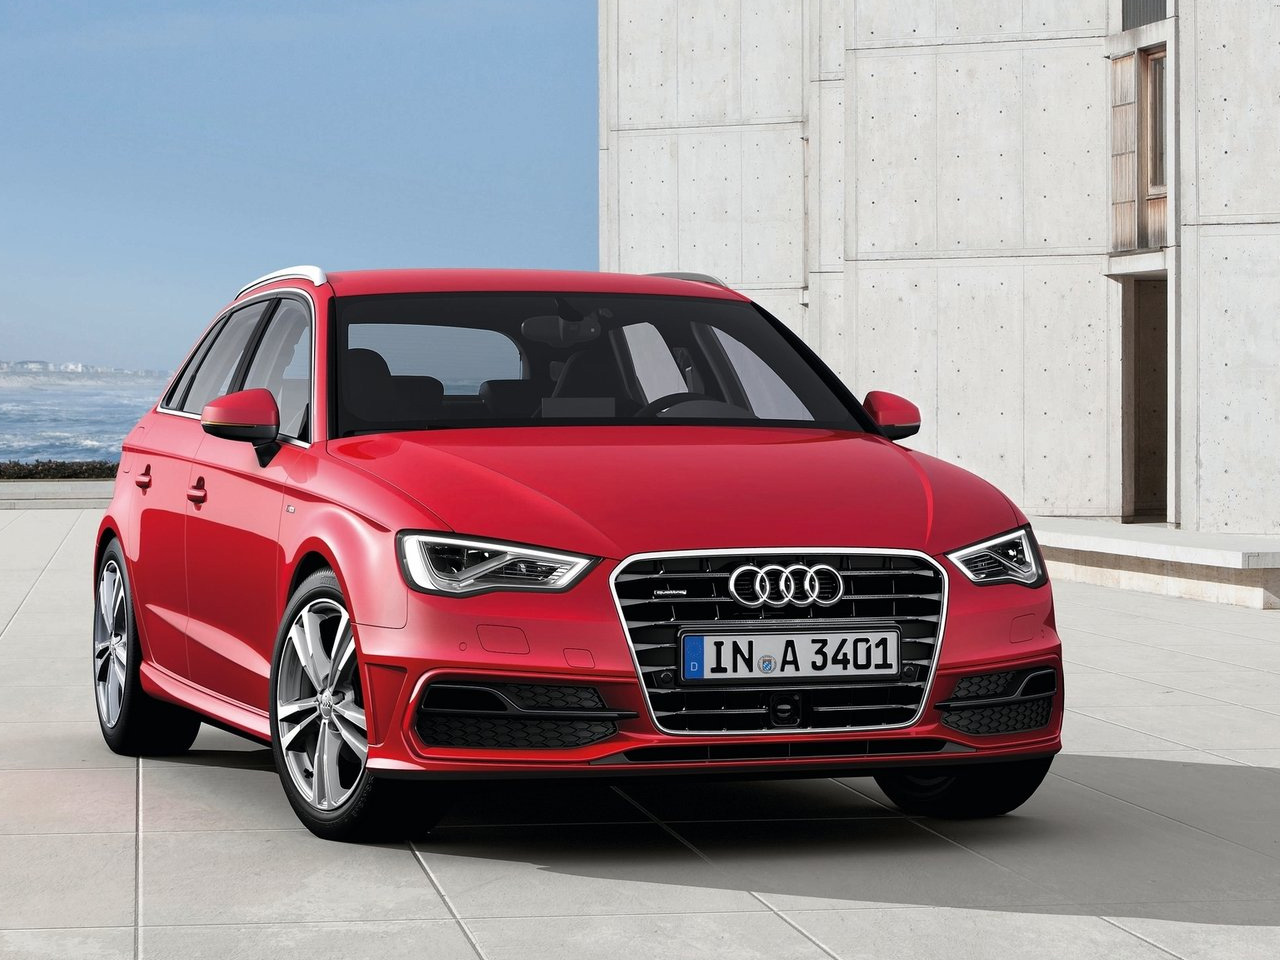 2013 audi a3 sportback s line show car to u. Black Bedroom Furniture Sets. Home Design Ideas